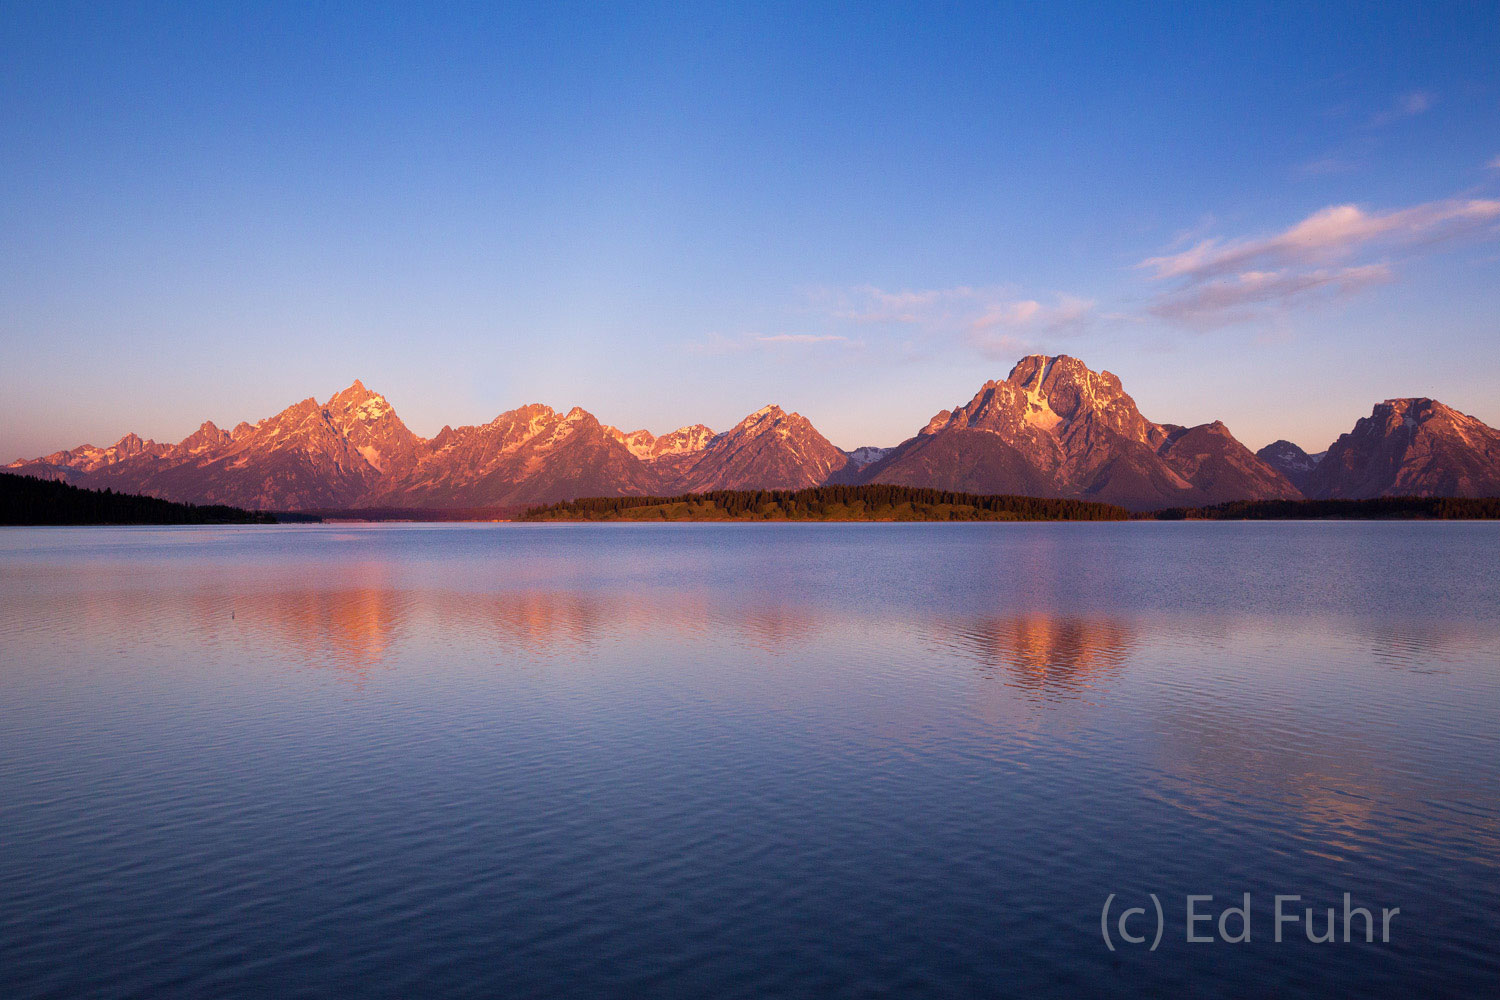 grand teton national park, jackson lake, sunrise photograph, image, 2013, Tetons, Grand Teton, photo